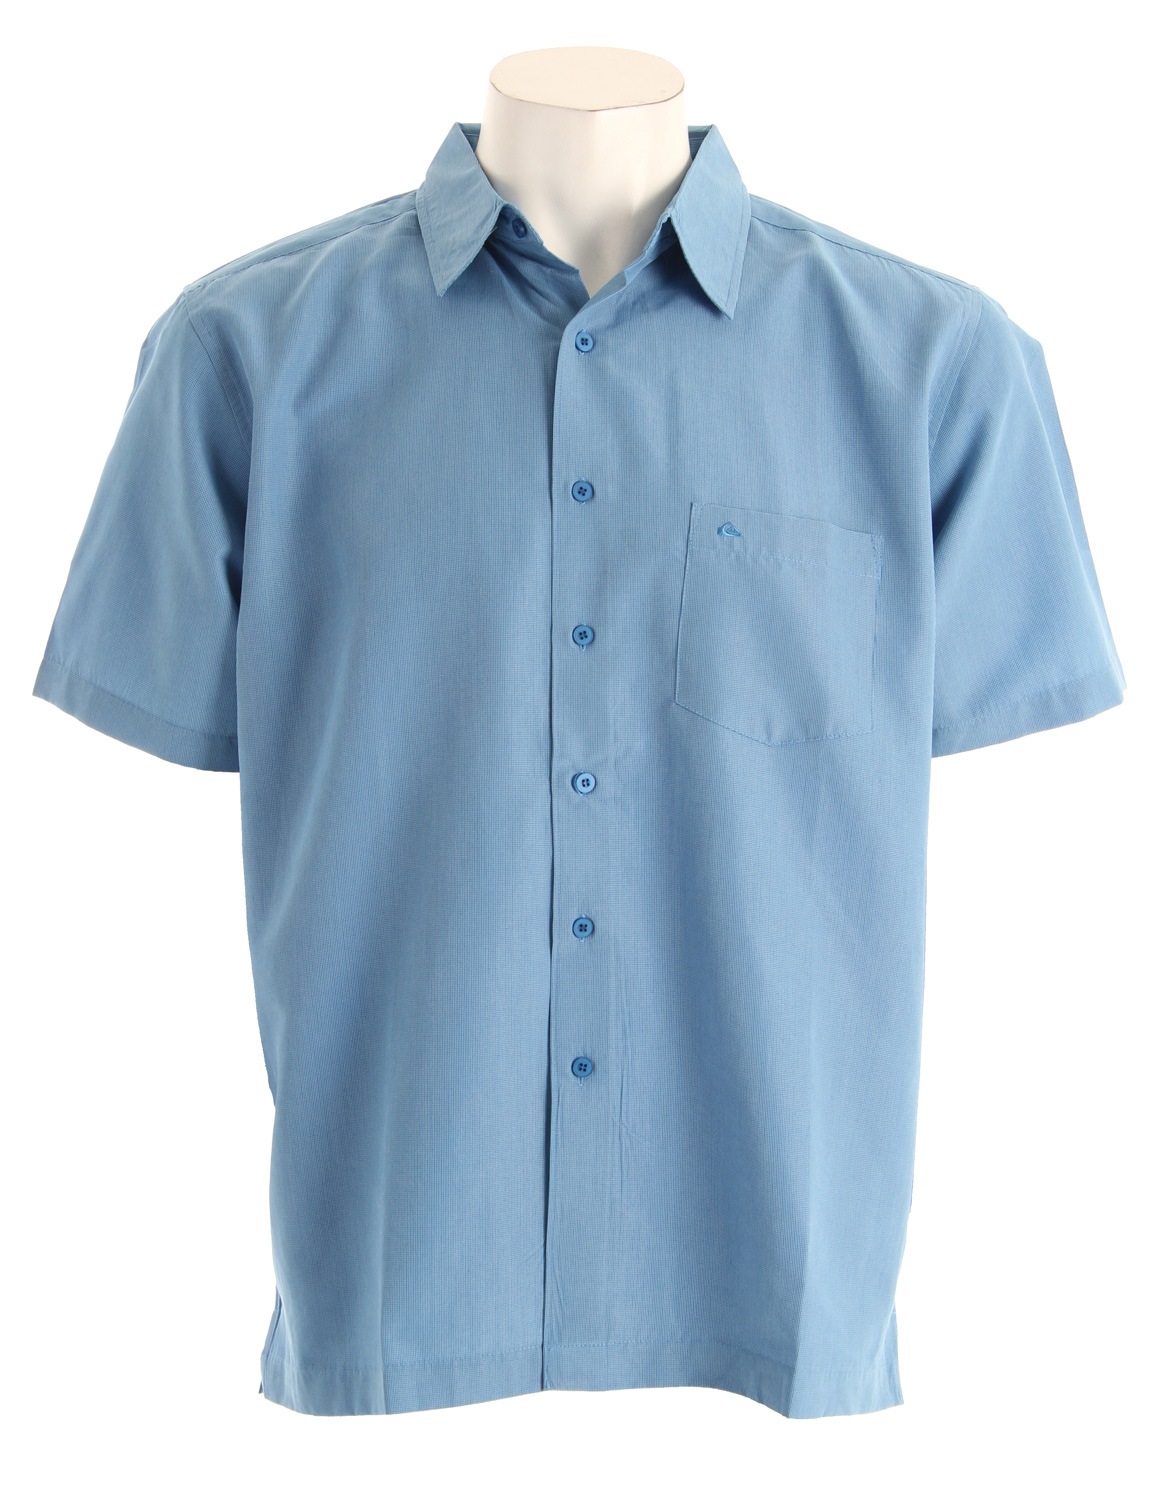 Surf Short sleeve yarn dyed shirt with chest pocket, side vents and mountain & wave embroidery at front pocket. 83% polynosic, 17% polyester - $34.95